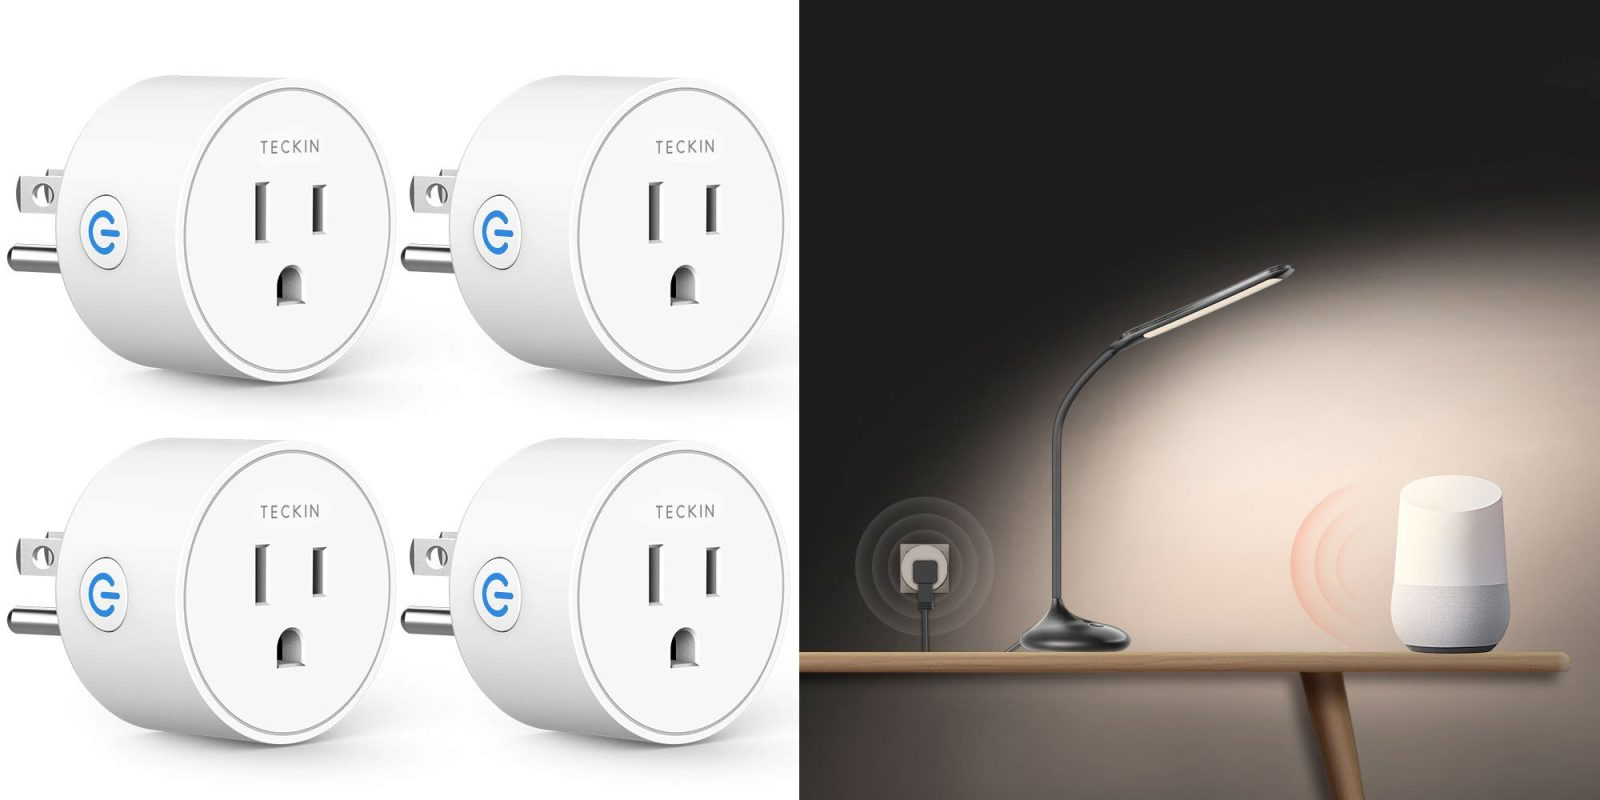 This four-pack of smart plugs is down to just $7 Prime shipped each